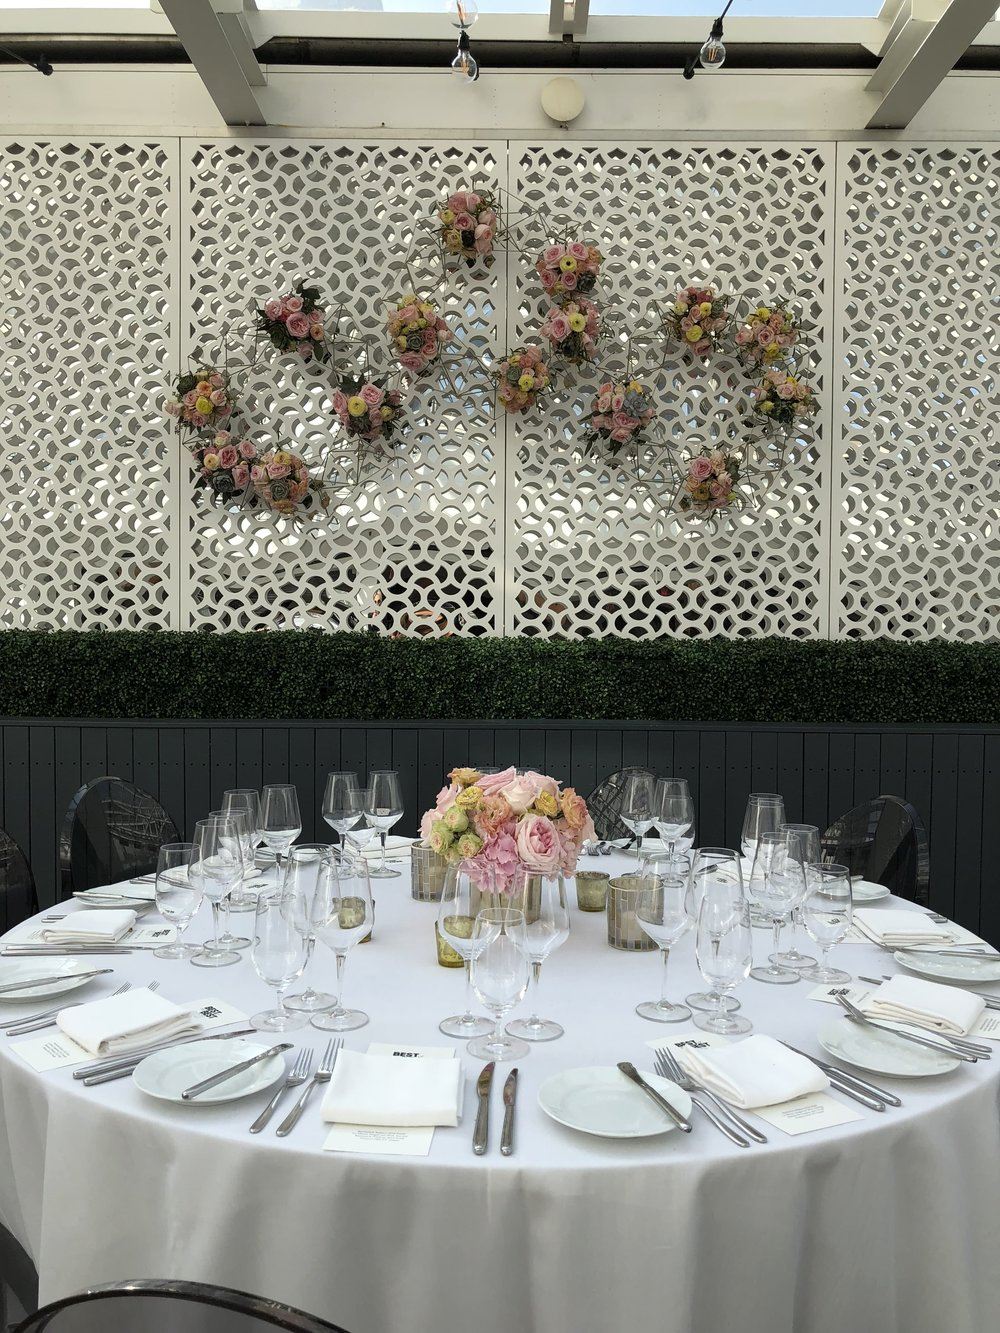 BLOOMINGDALES - AWARDS DINNER - SPRING TABLESCAPE 2019 - B FLORAL